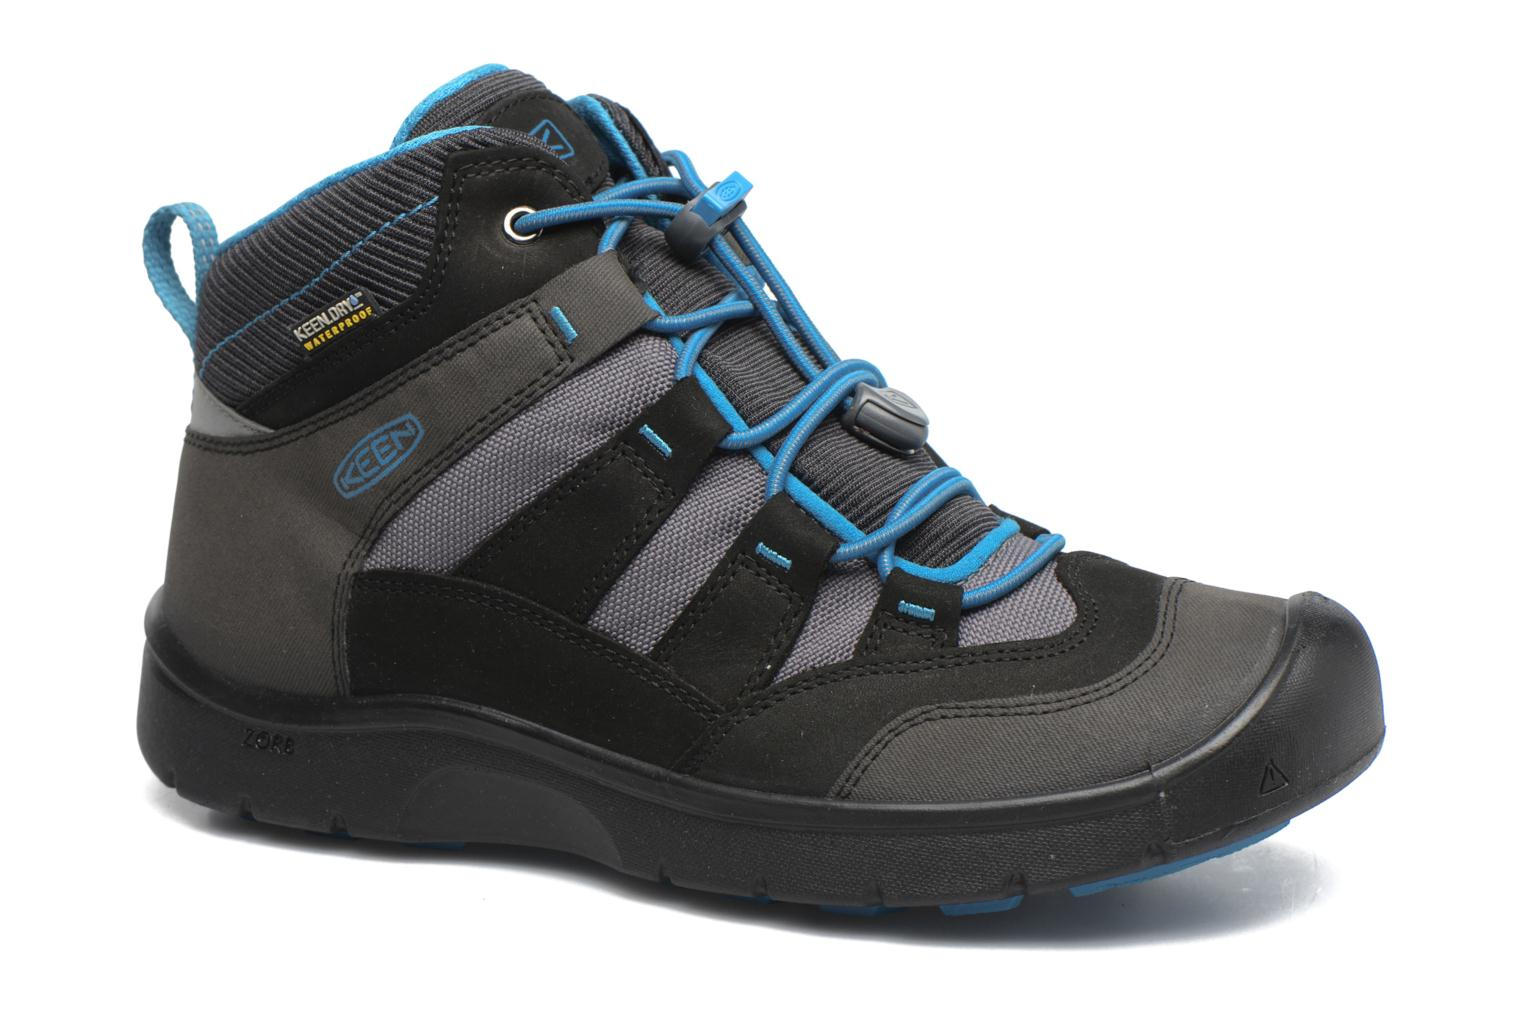 Keen Mid Youth Hikeport Keen Mid Hikeport Youth